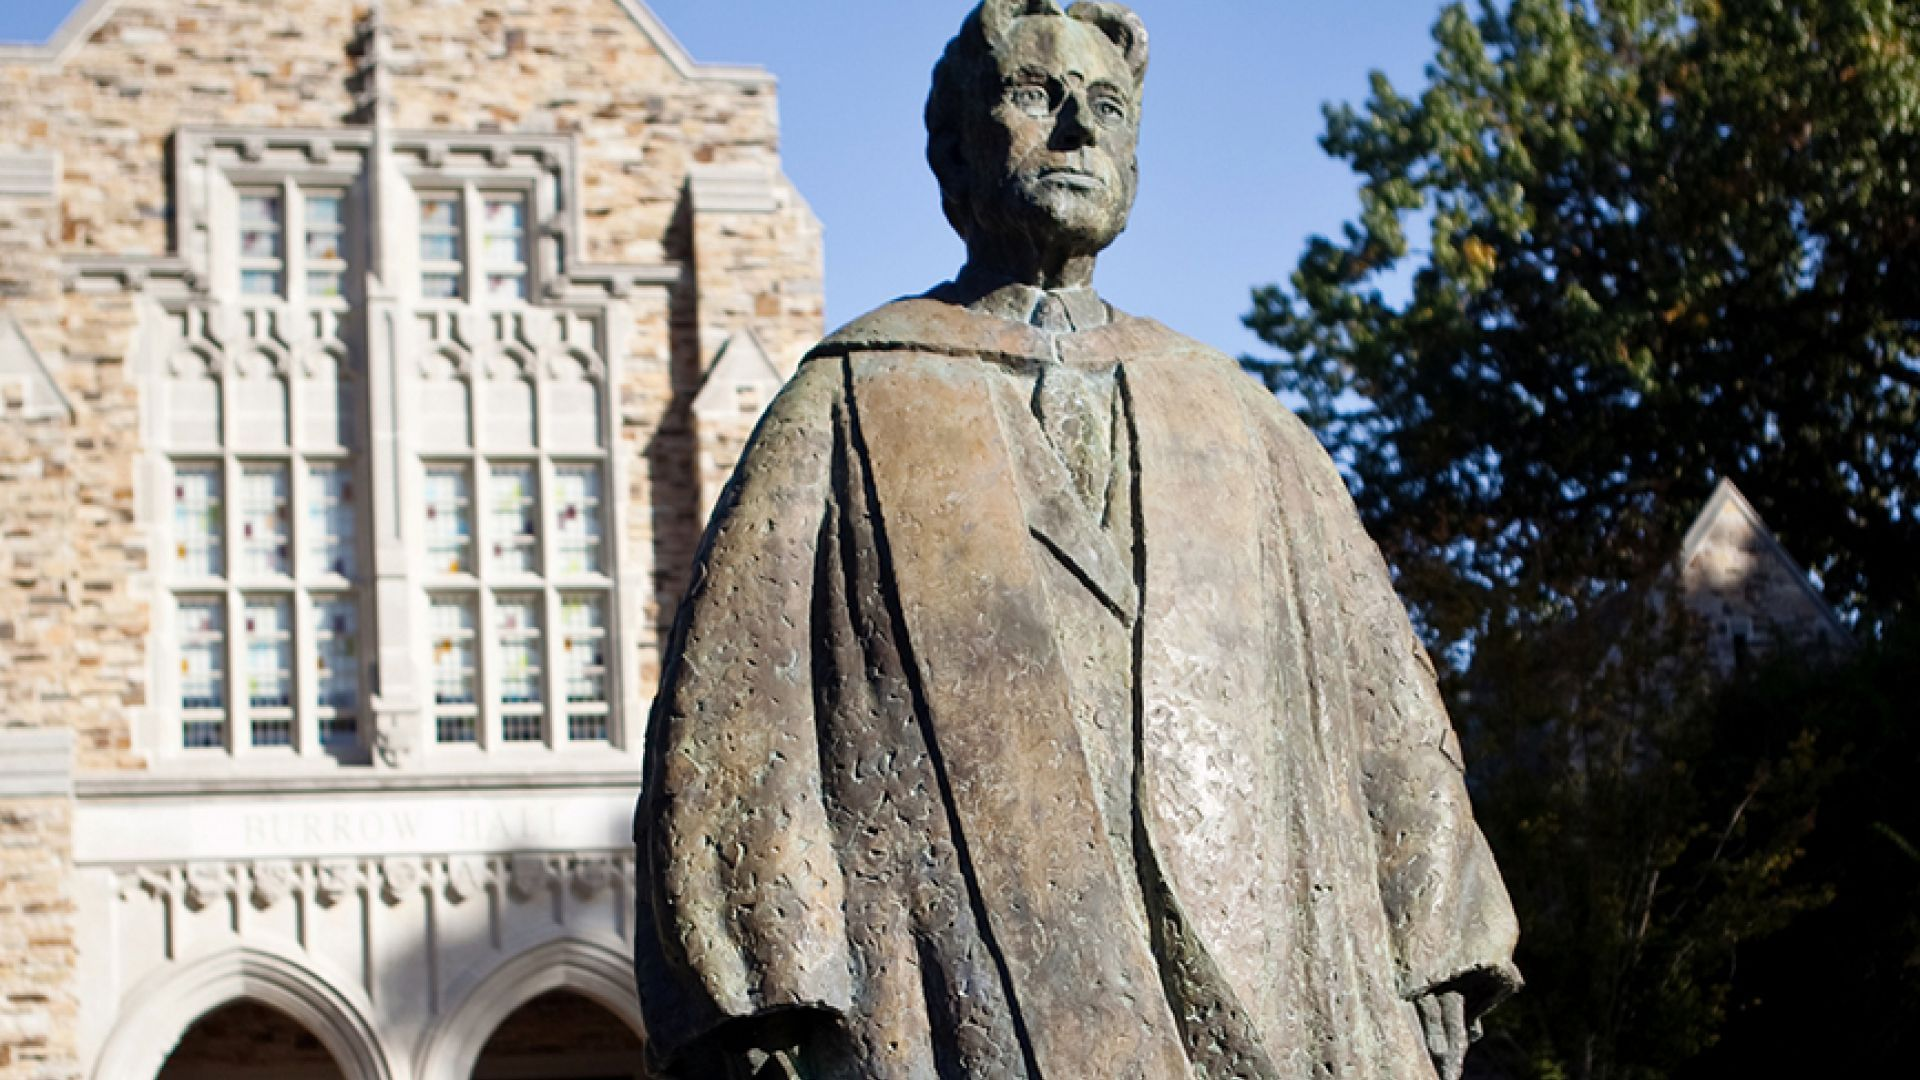 the diehl statue